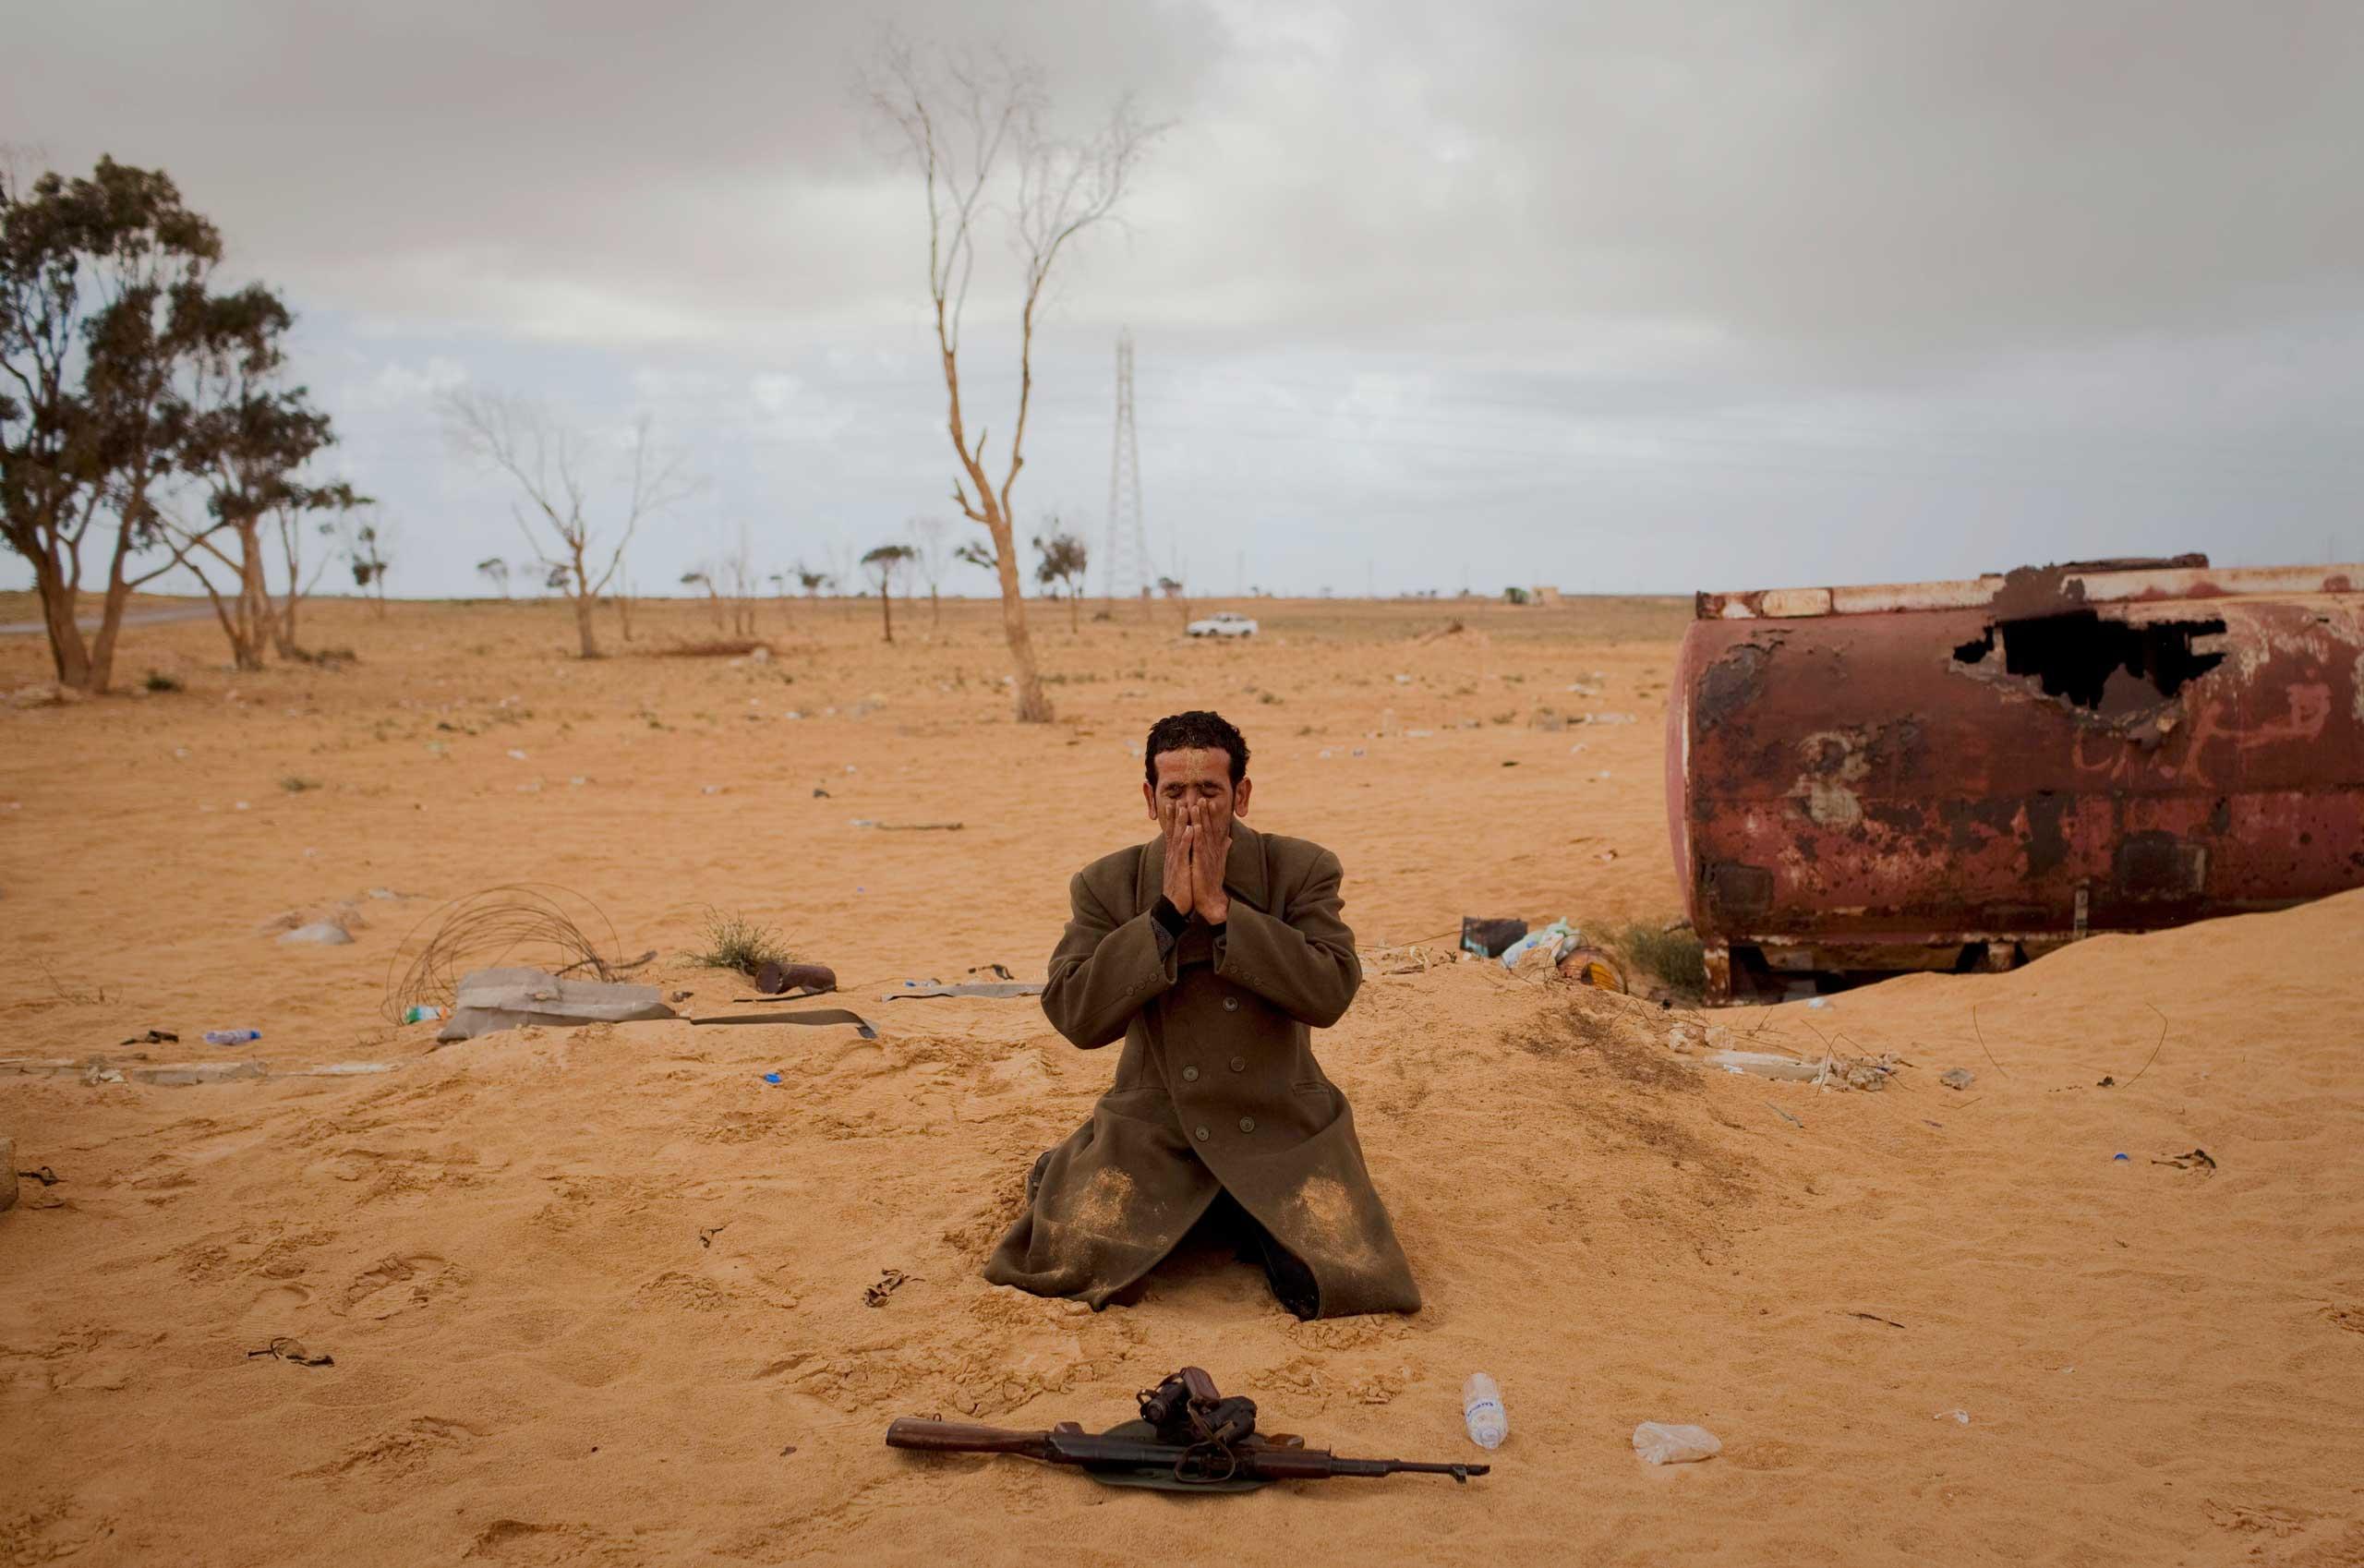 A Libyan rebel prays next to his gun on the frontline of the outskirts of the city of Ajdabiya, south of Benghazi, eastern Libya, March 21, 2011.